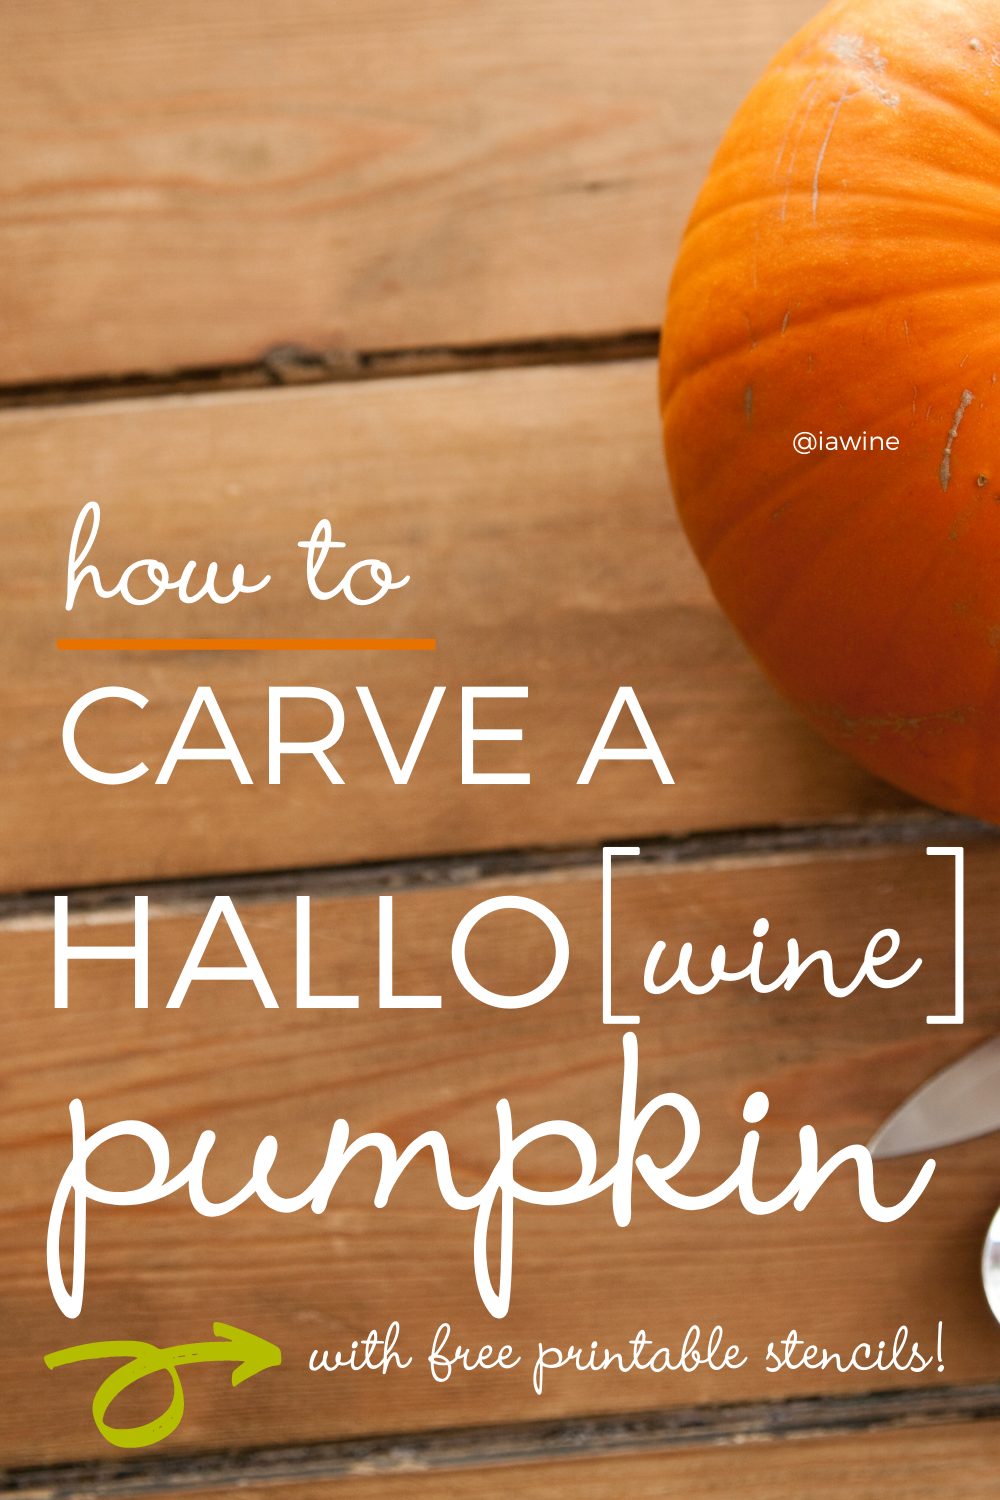 Htamwi5nrtvk3m Pumpkins make a great fat substitute in baking thus helping you to cut the fat to about 30 percent of. https iowawinegrowers org ideas inspiration fun pumpkin carving how to